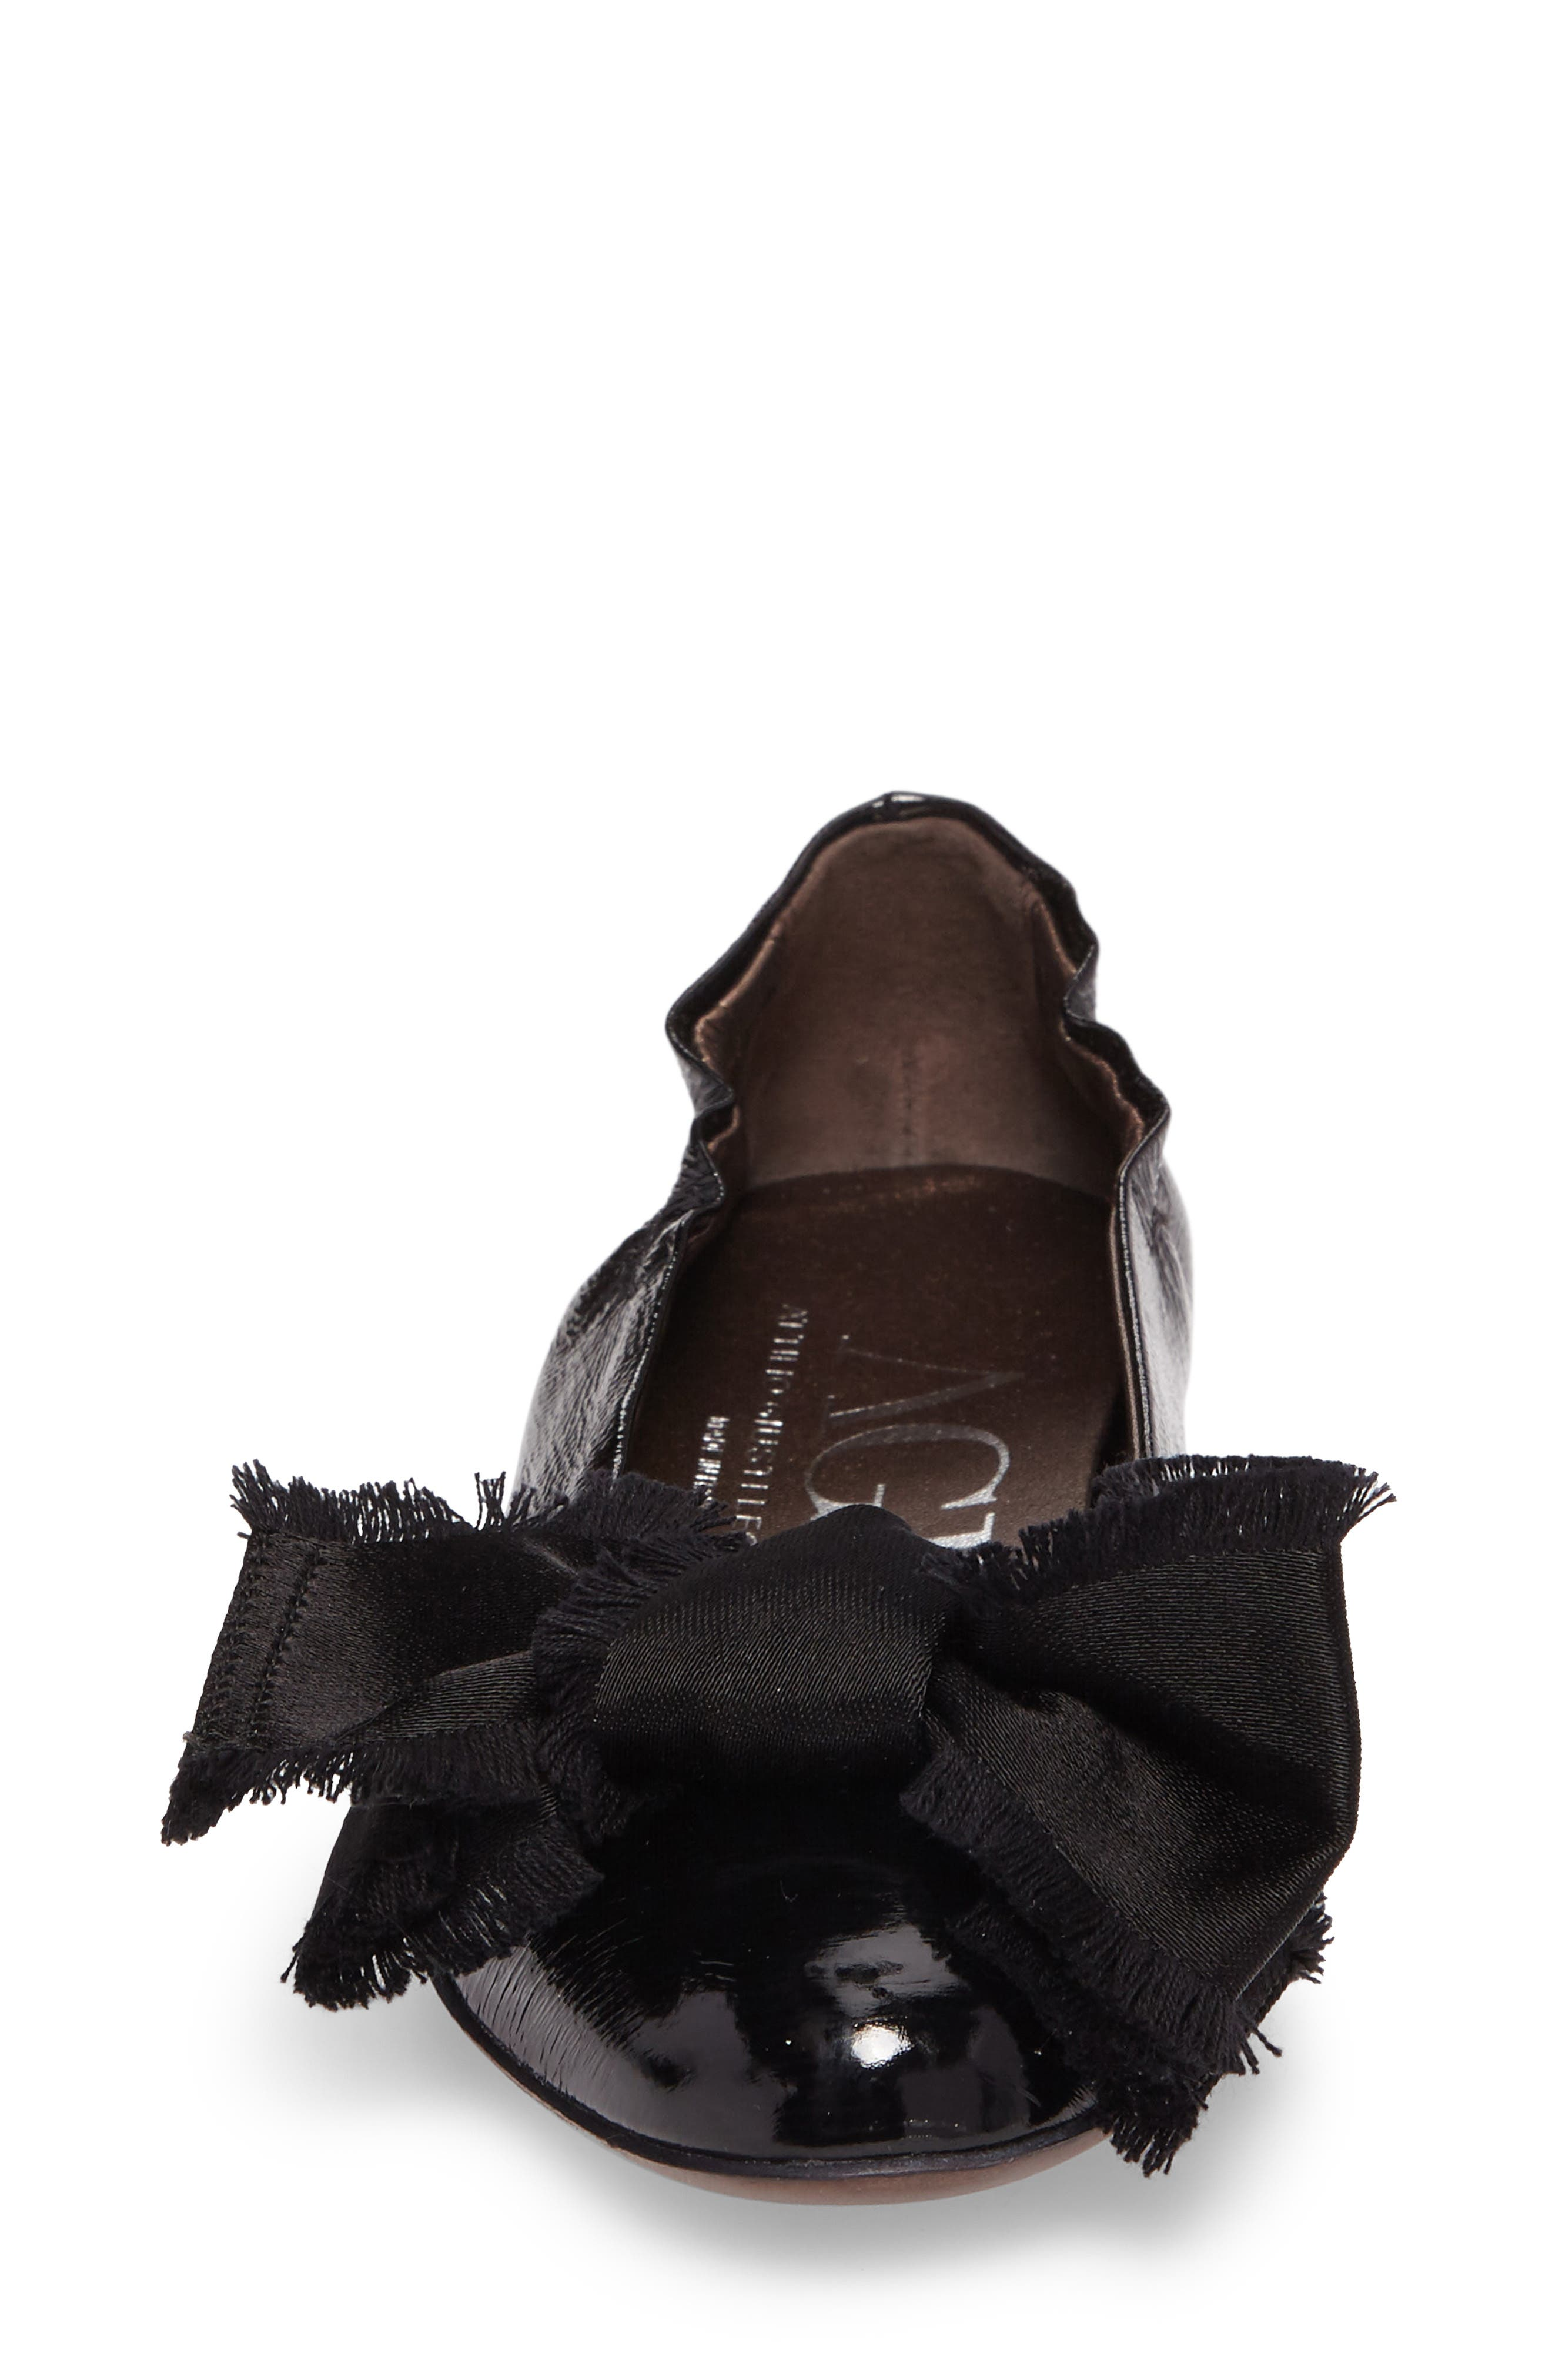 Satin Bow Ballet Flat,                             Alternate thumbnail 4, color,                             BLACK LEATHER